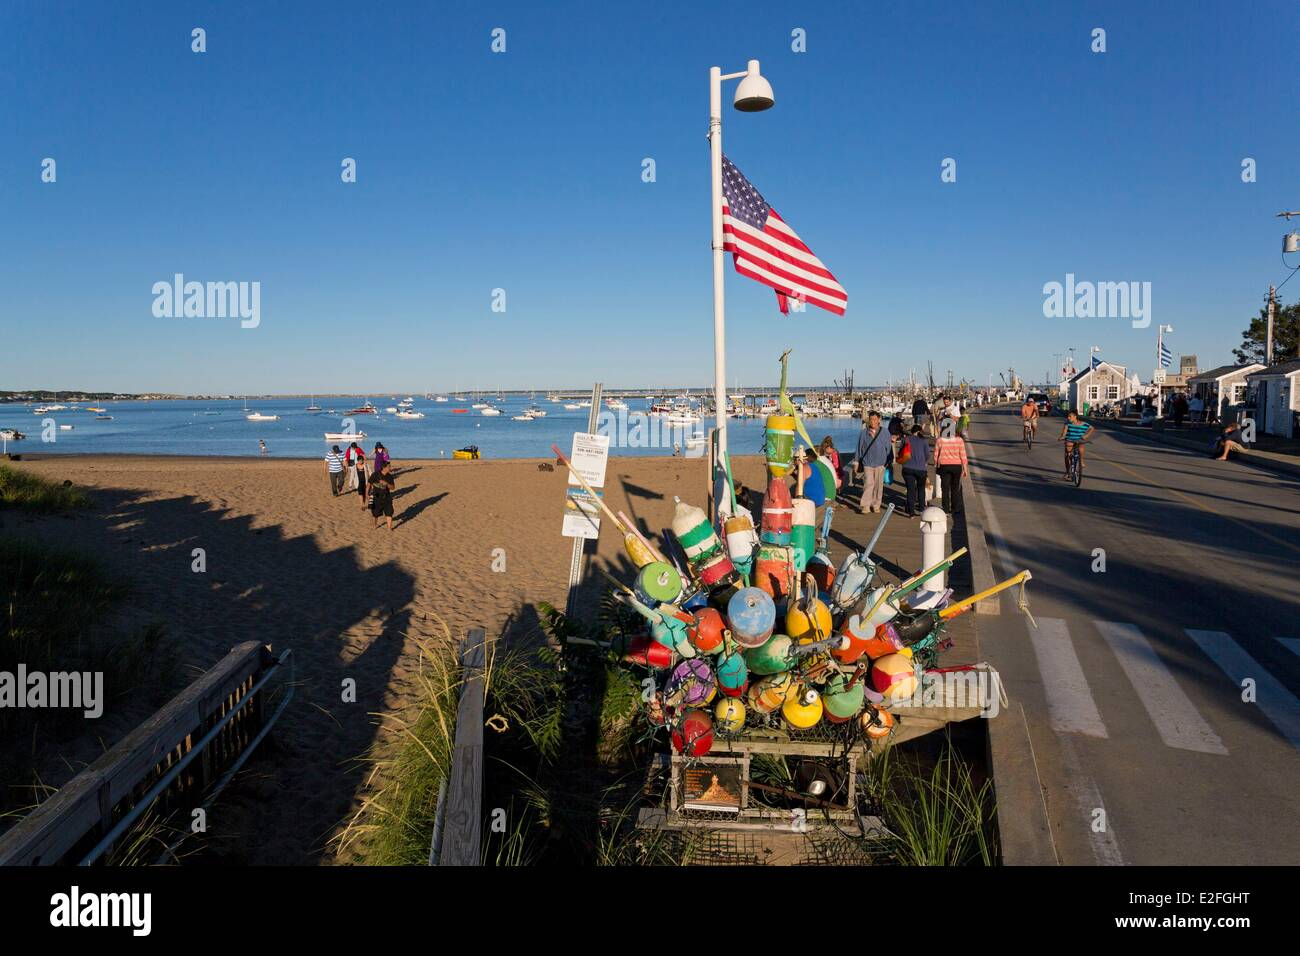 United States, Massachusetts, Cape Cod, Provincetown, the beach and the Pier - Stock Image